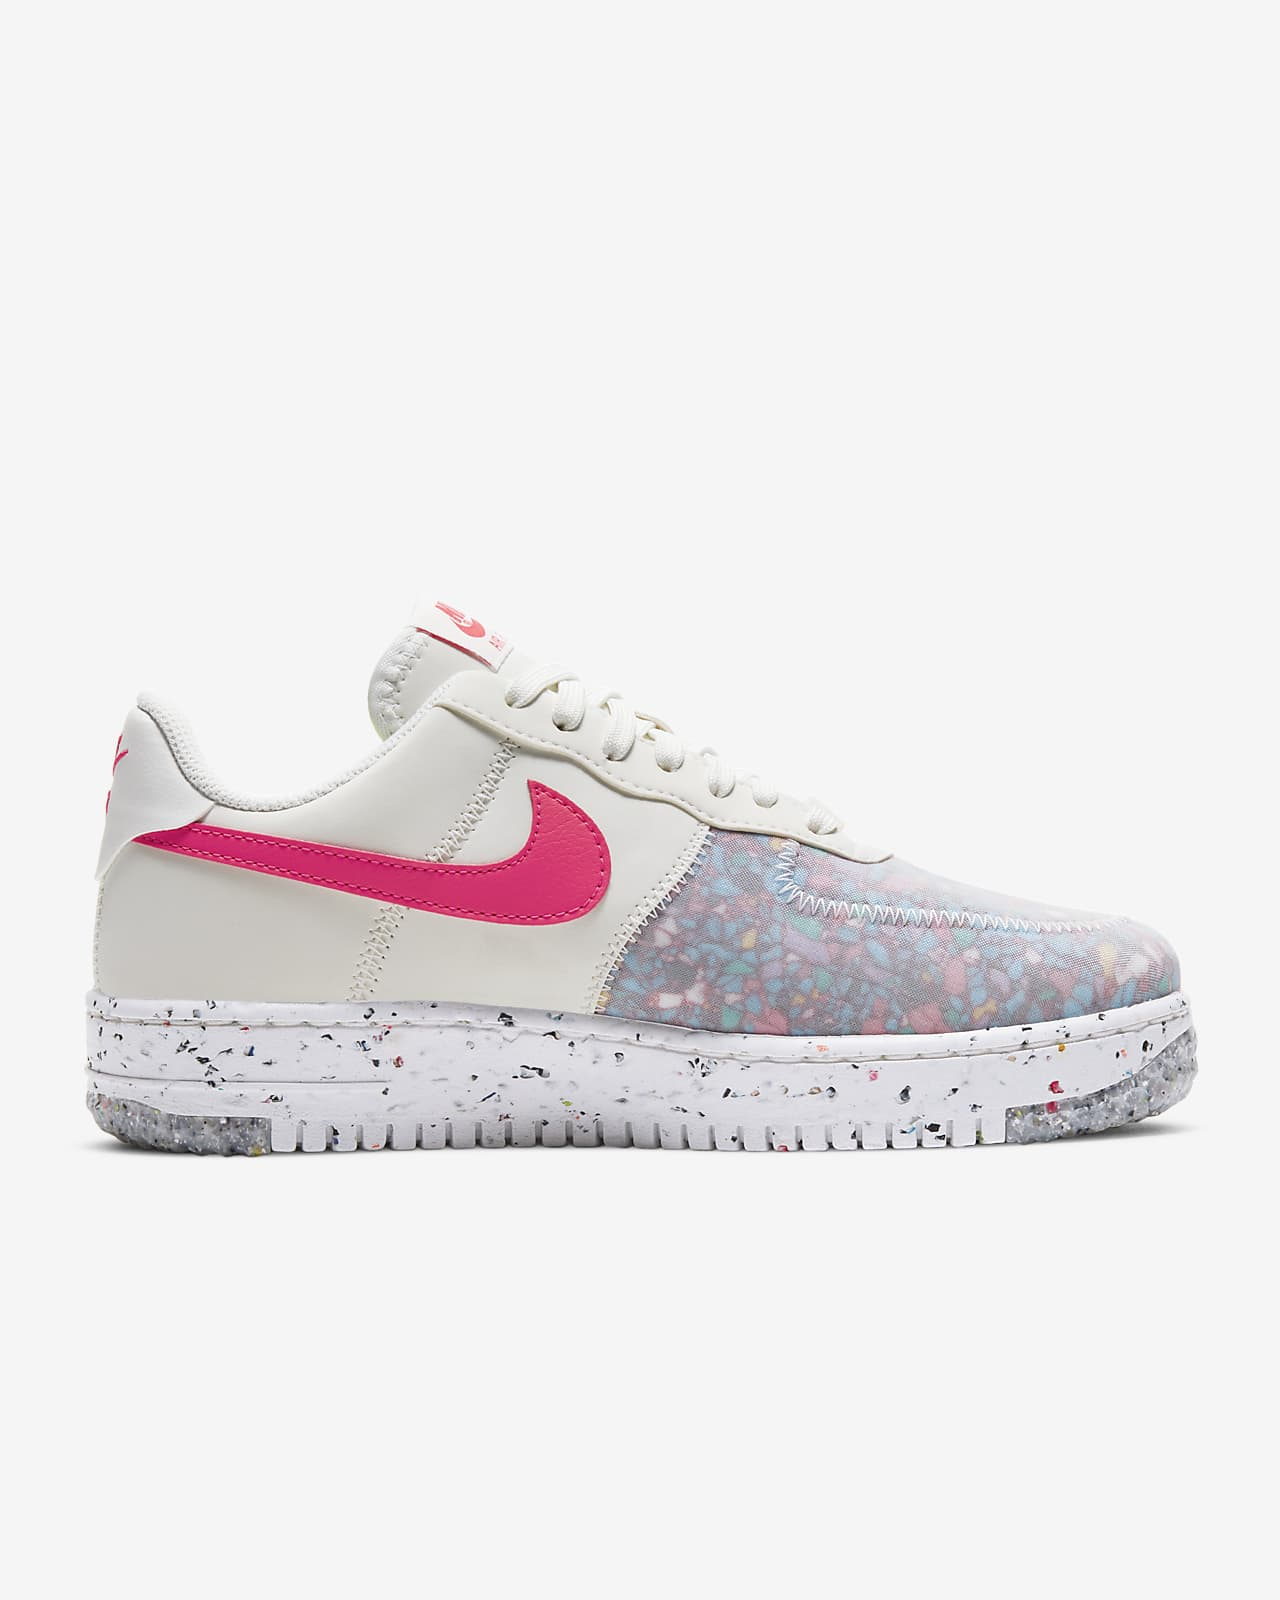 Nike Air Force 1 Crater Women's Shoes